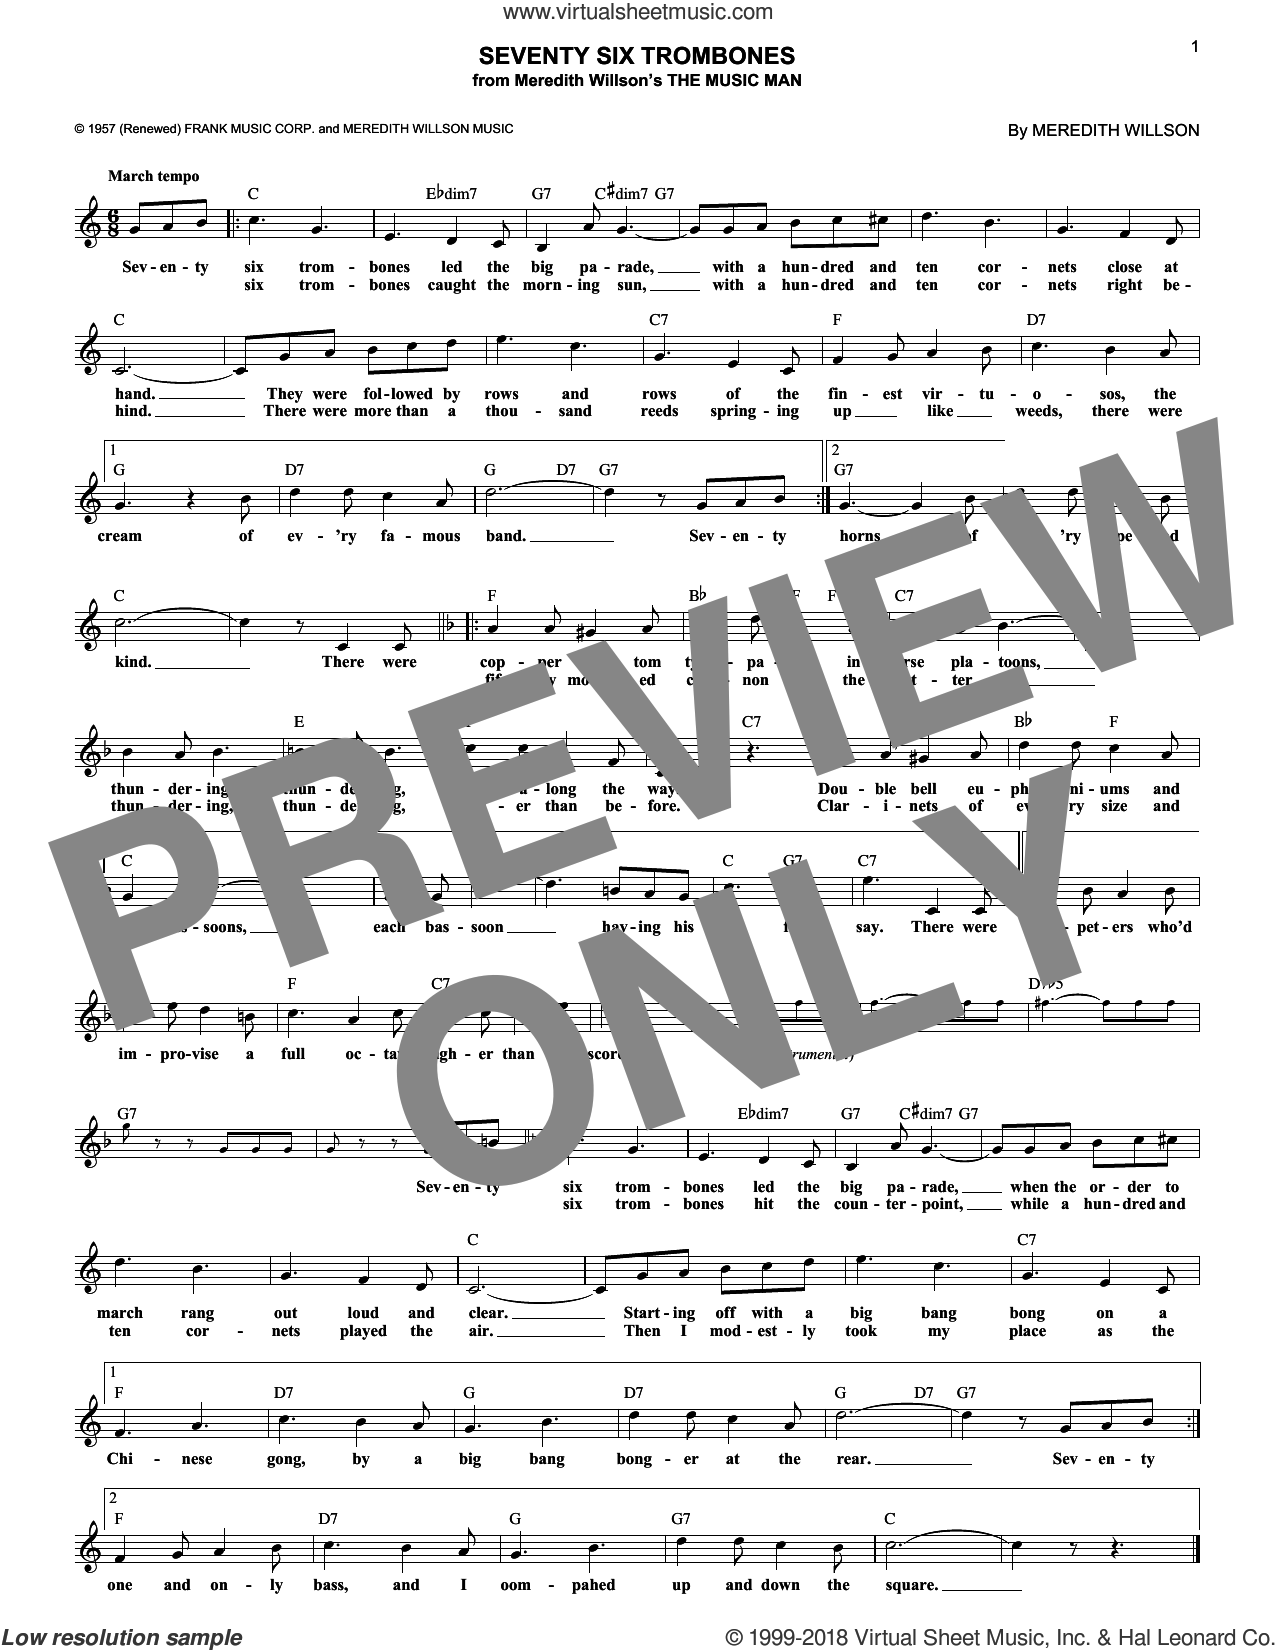 Seventy Six Trombones sheet music for voice and other instruments (fake book) by Meredith Willson, intermediate skill level